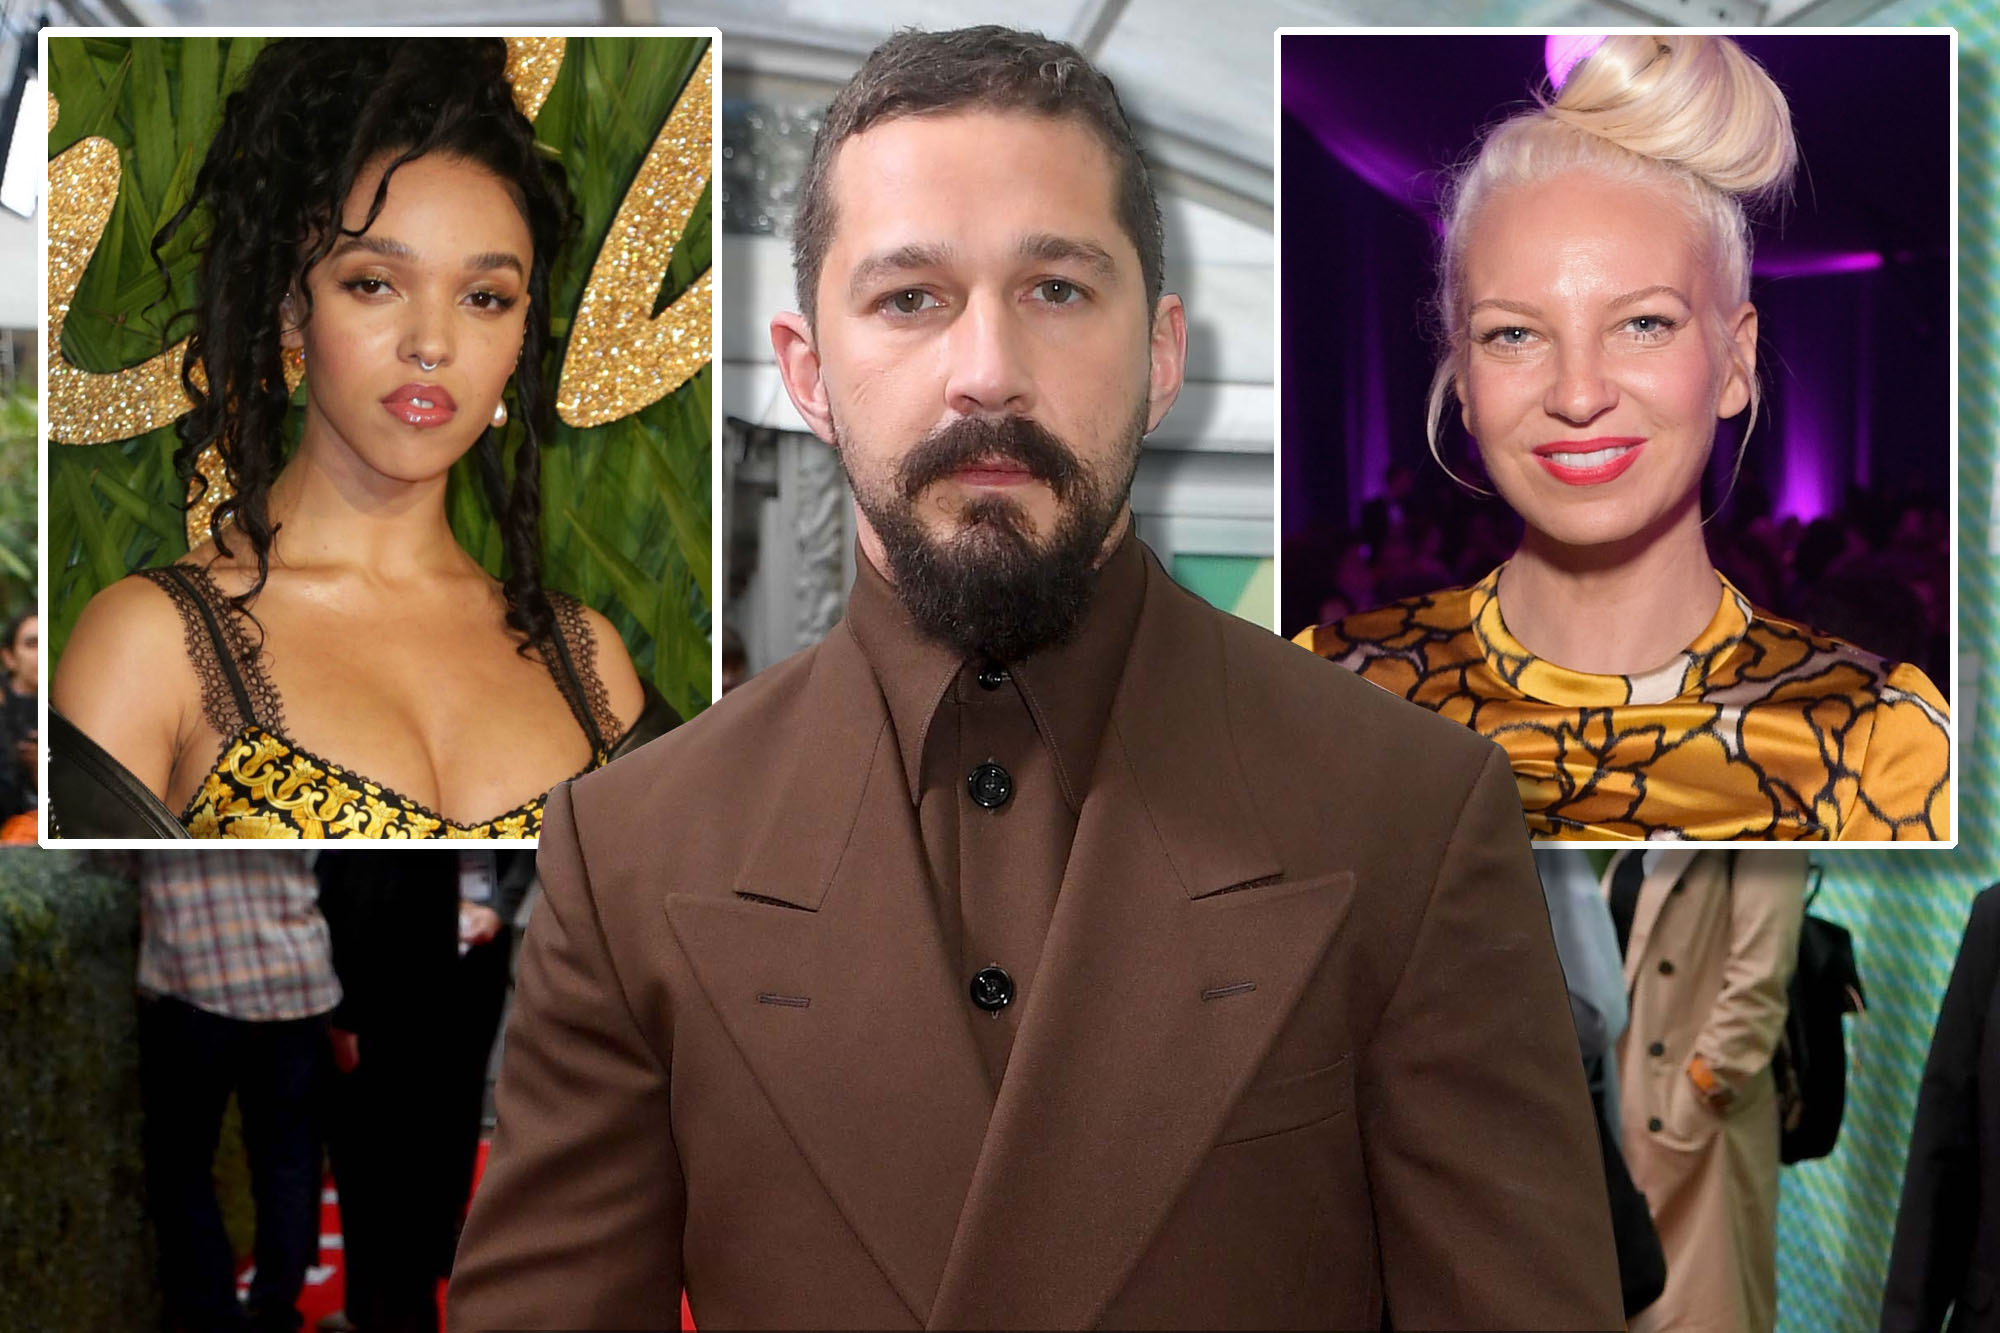 FKA twigs' 'traumatized' over Shia LaBeouf 'abuse': insider